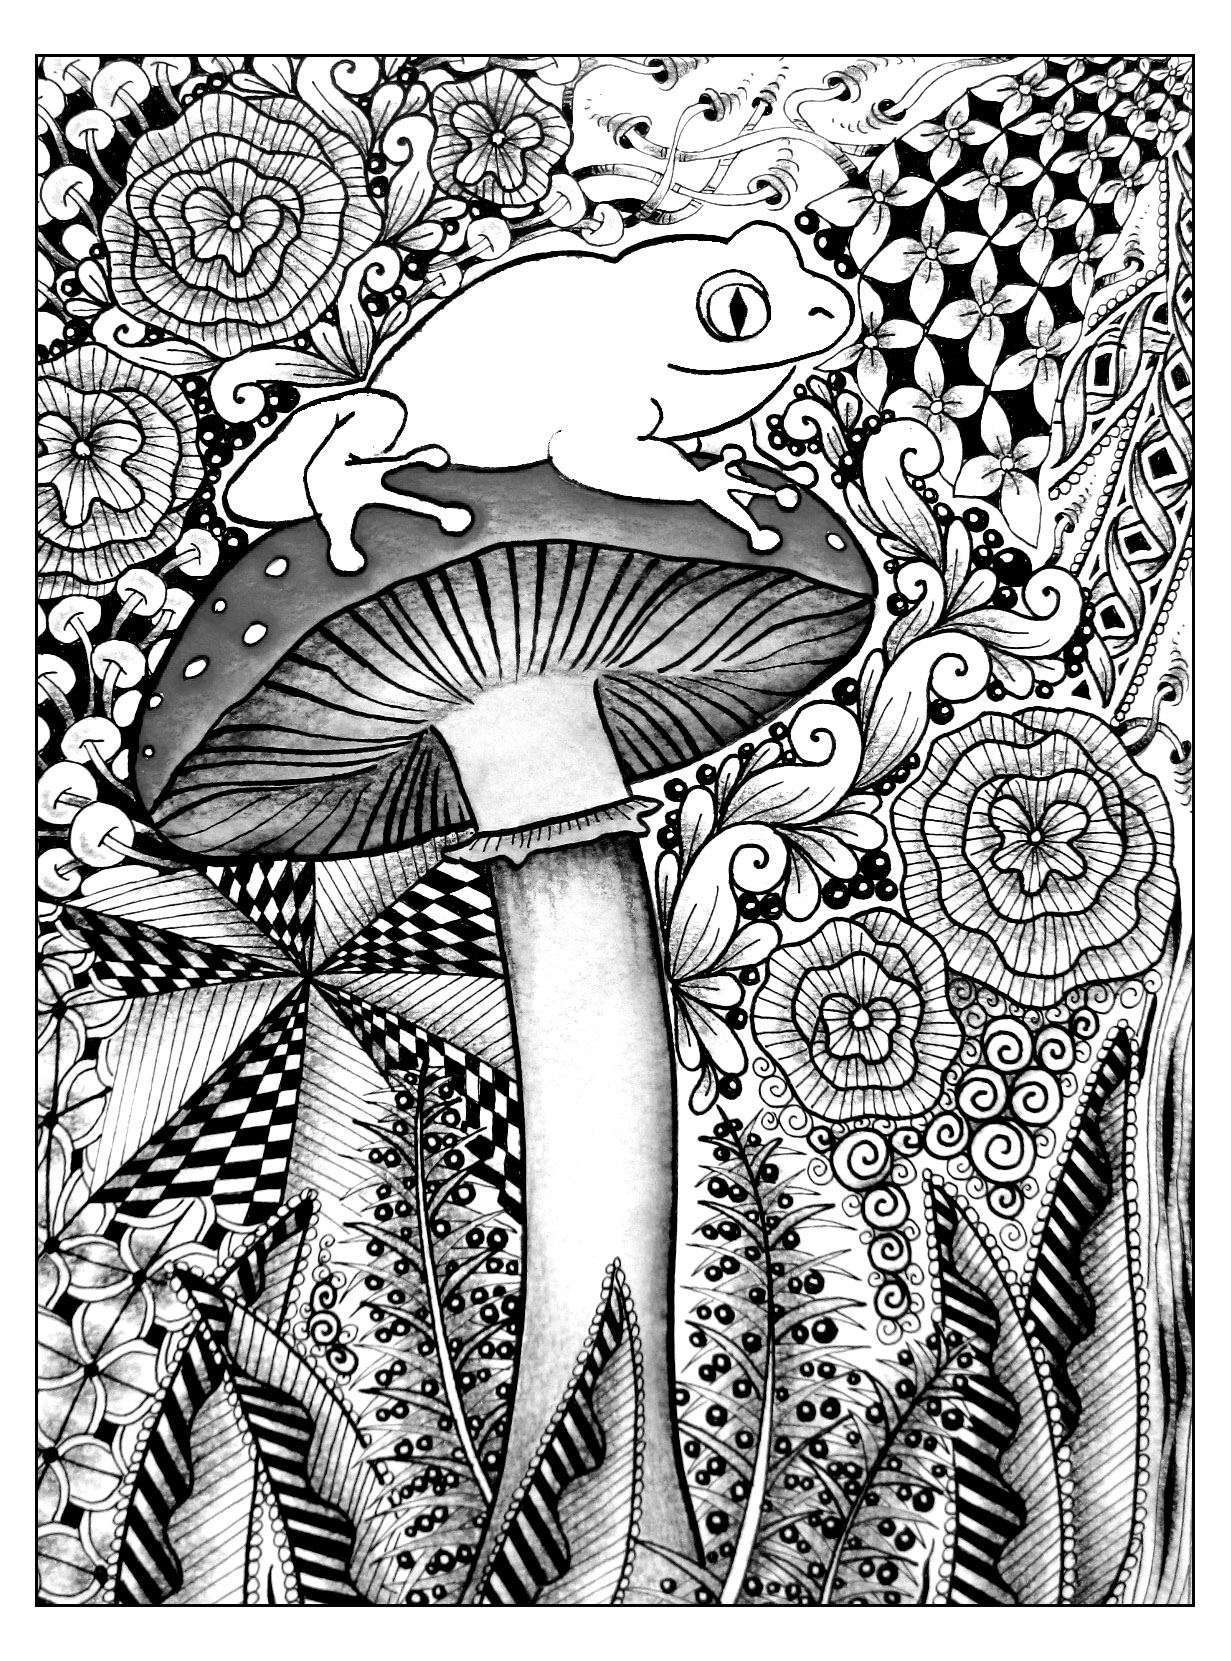 A Cute Frog On Big Mushroom For Beautiful Coloring Page Adult